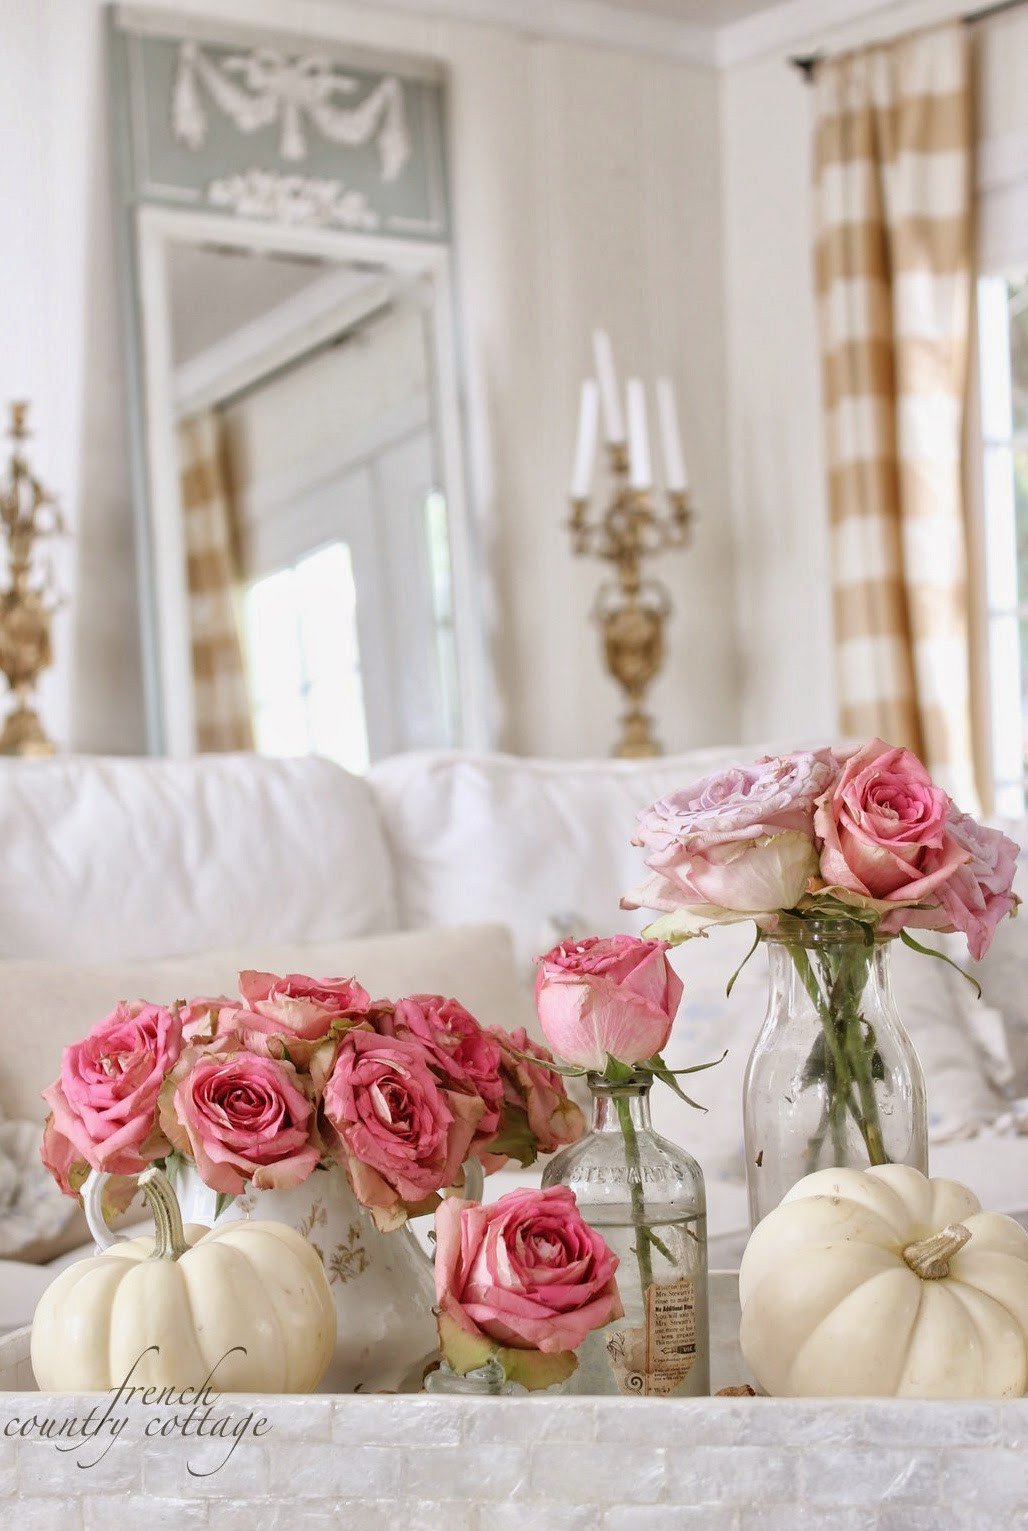 Shabby Chic Fall Decor  Feathered Nest Friday FRENCH COUNTRY COTTAGE